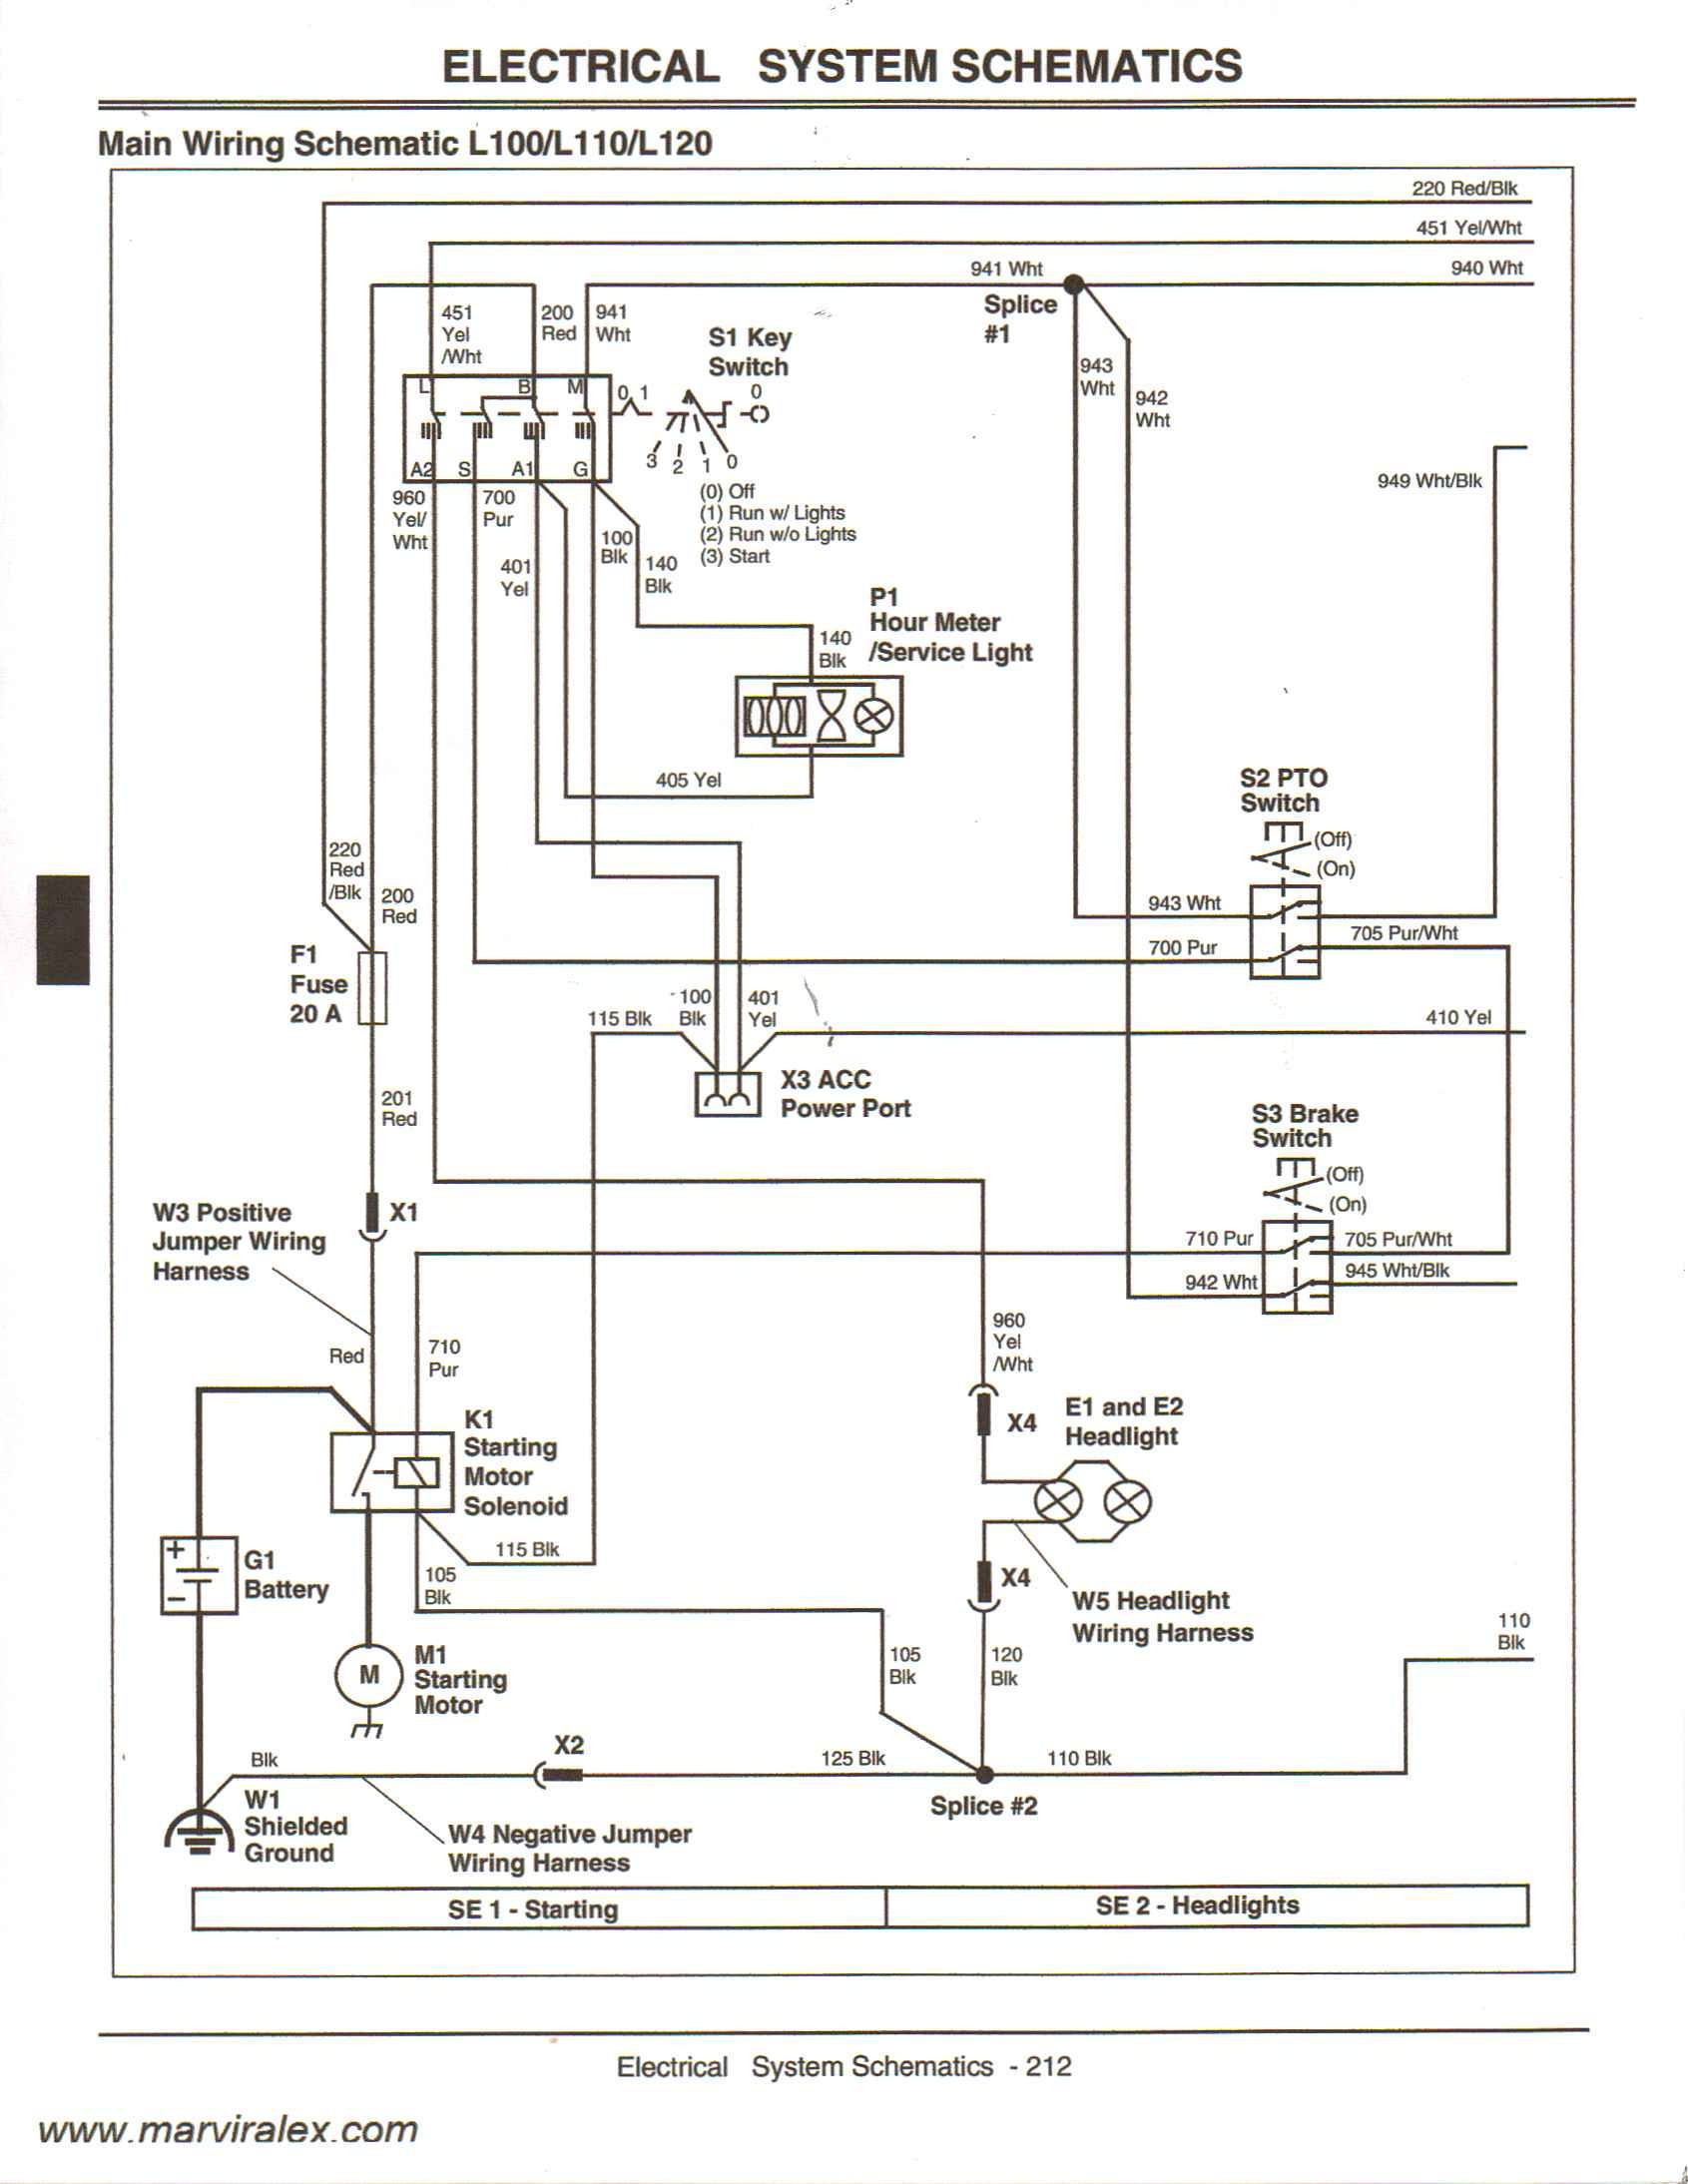 1020 John Deere Wiring - Go Wiring Diagram John Deere Wiring Diagram on john deere 1530 lights, john deere 1530 parts, john deere 1530 steering, new holland 1530 wiring diagram,